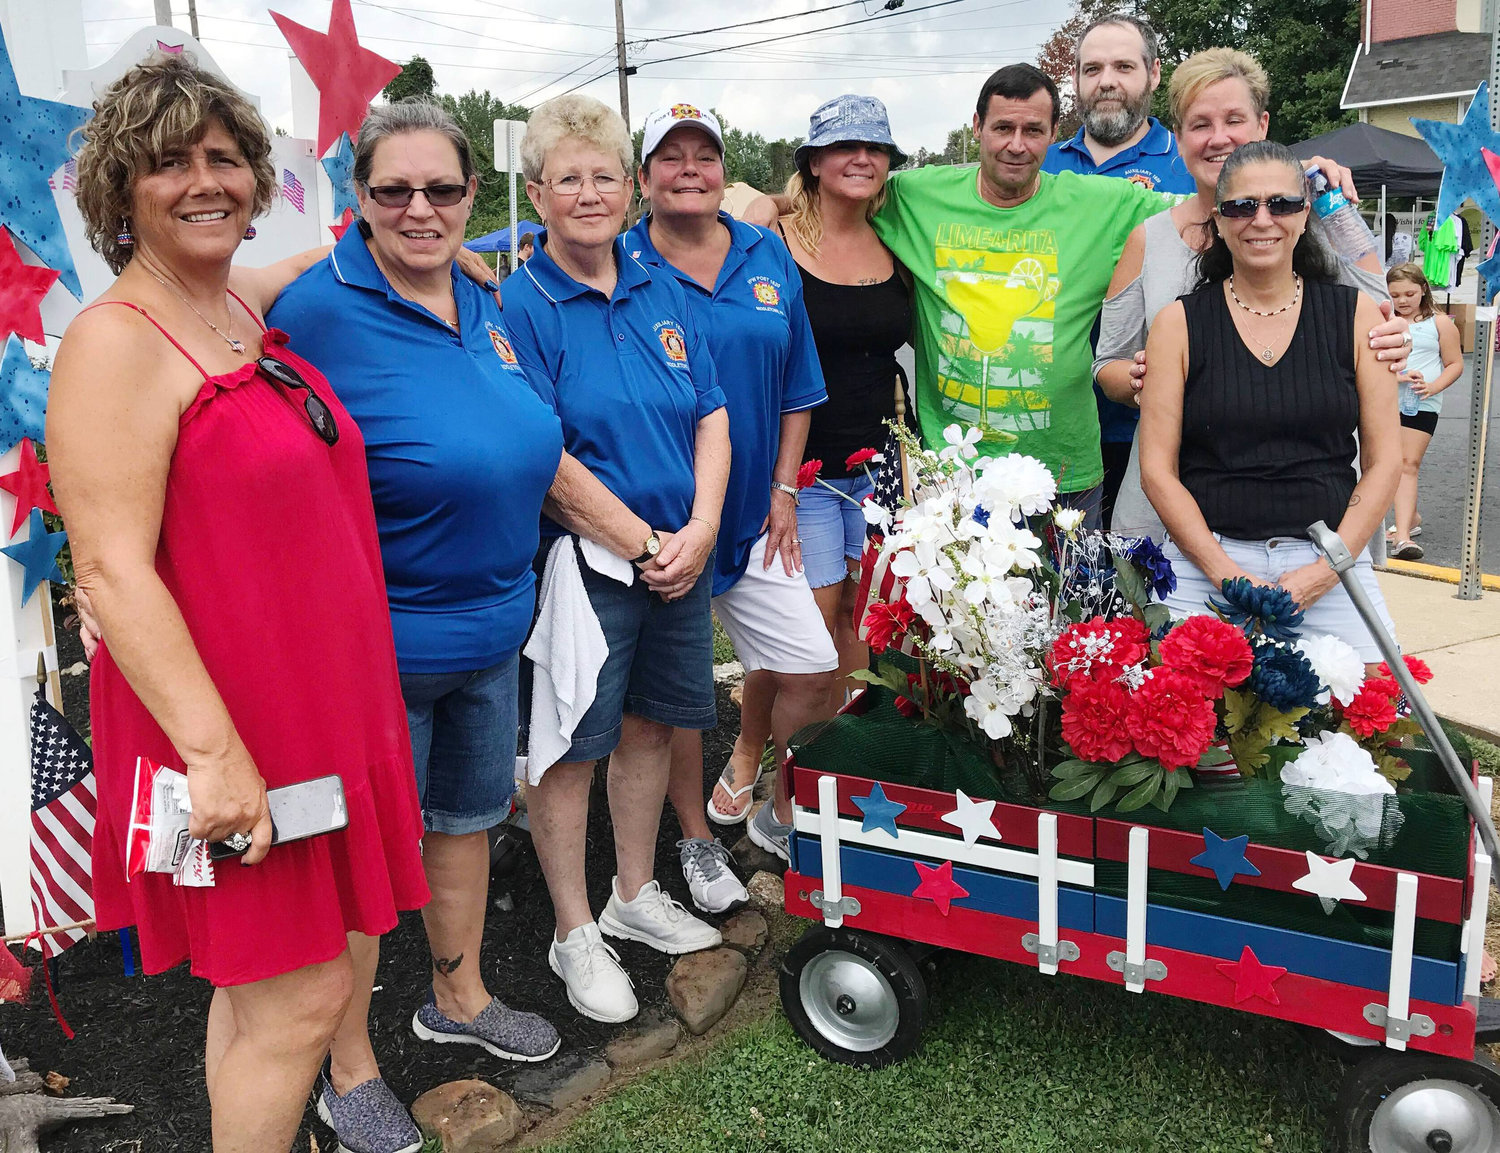 Middletown VFW Post No. 1620 Auxiliary hosted its first Freedom Community Festival on Aug. 17. Members are shown here with a wagon designed for the occasion by Dawn Markle, sister of event chairwoman Tina Cobaugh, left.